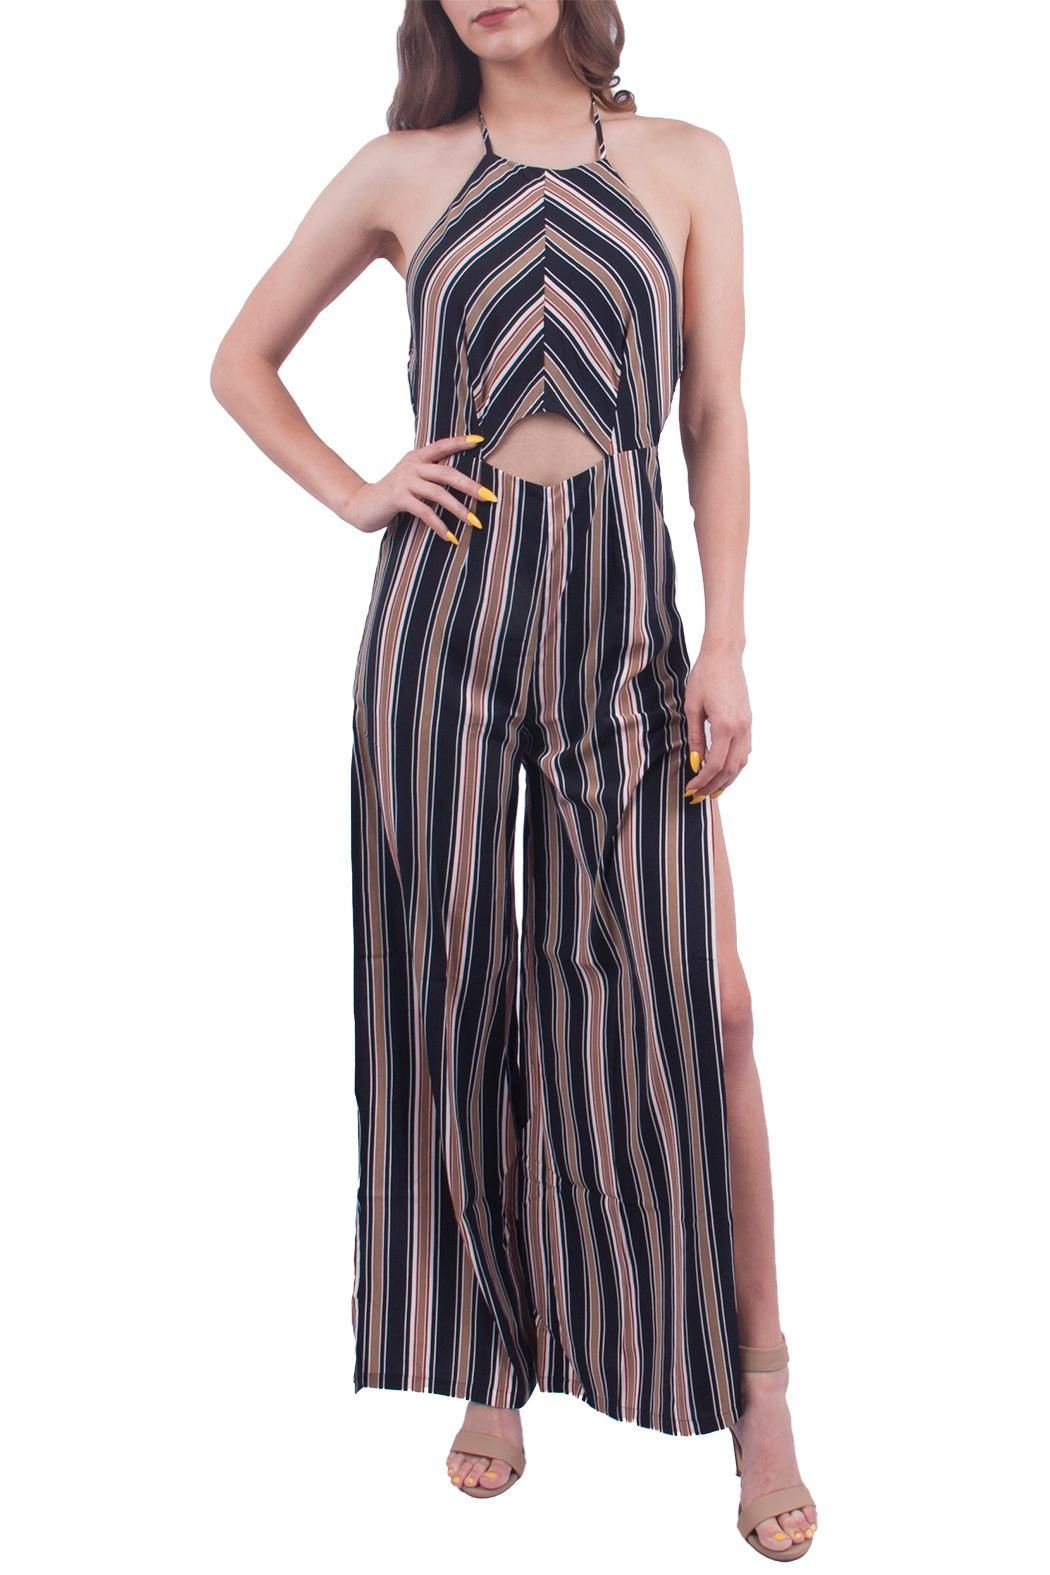 454f5038f888 Hommage Navy Striped Jumpsuit from Las Vegas by Apricot Lane - Las ...